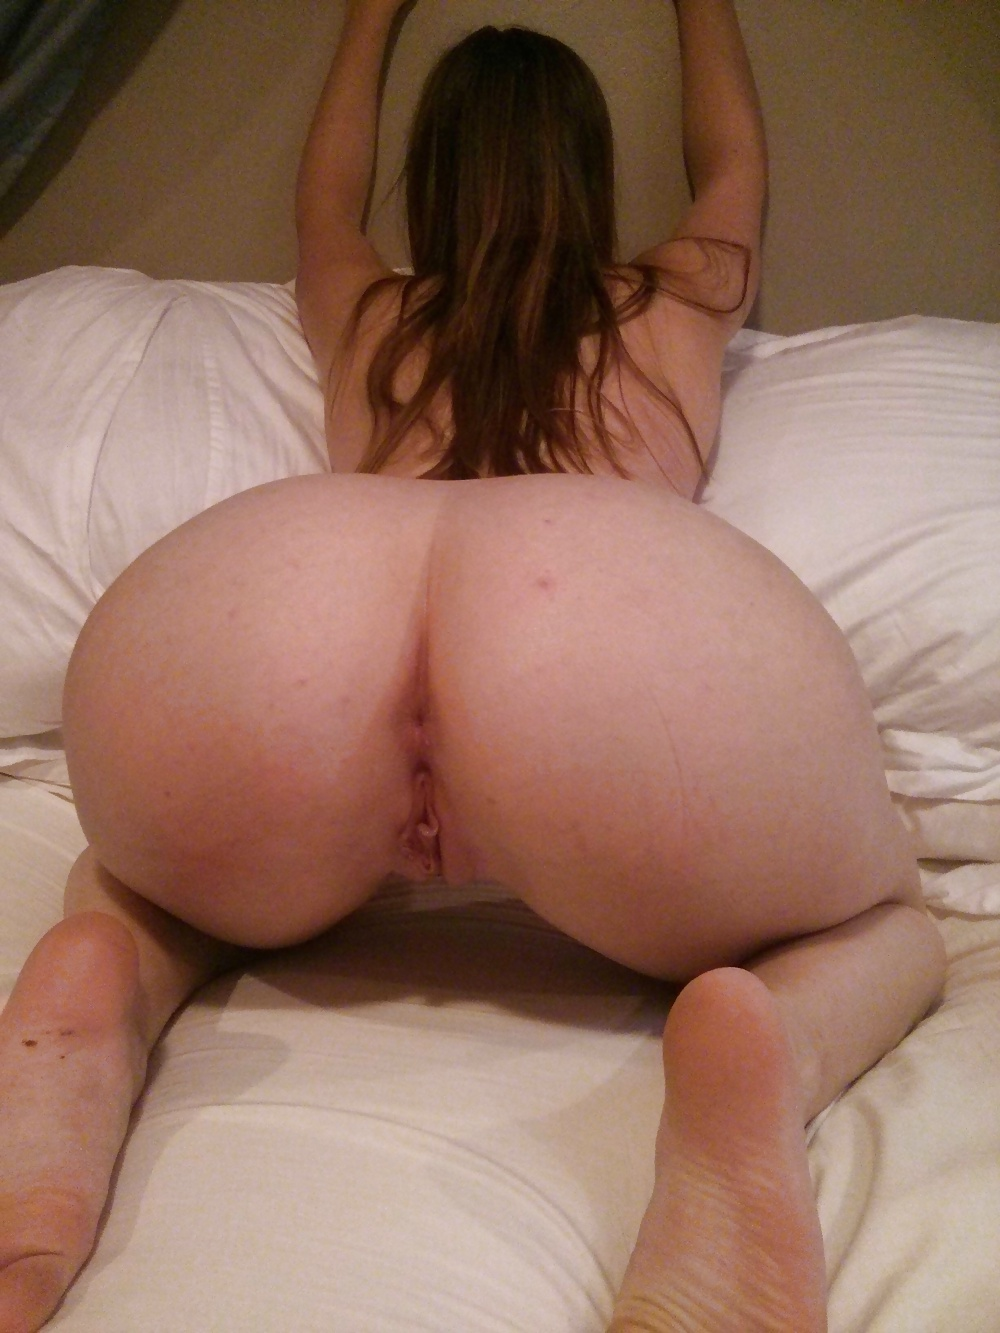 White girl pussy and butt